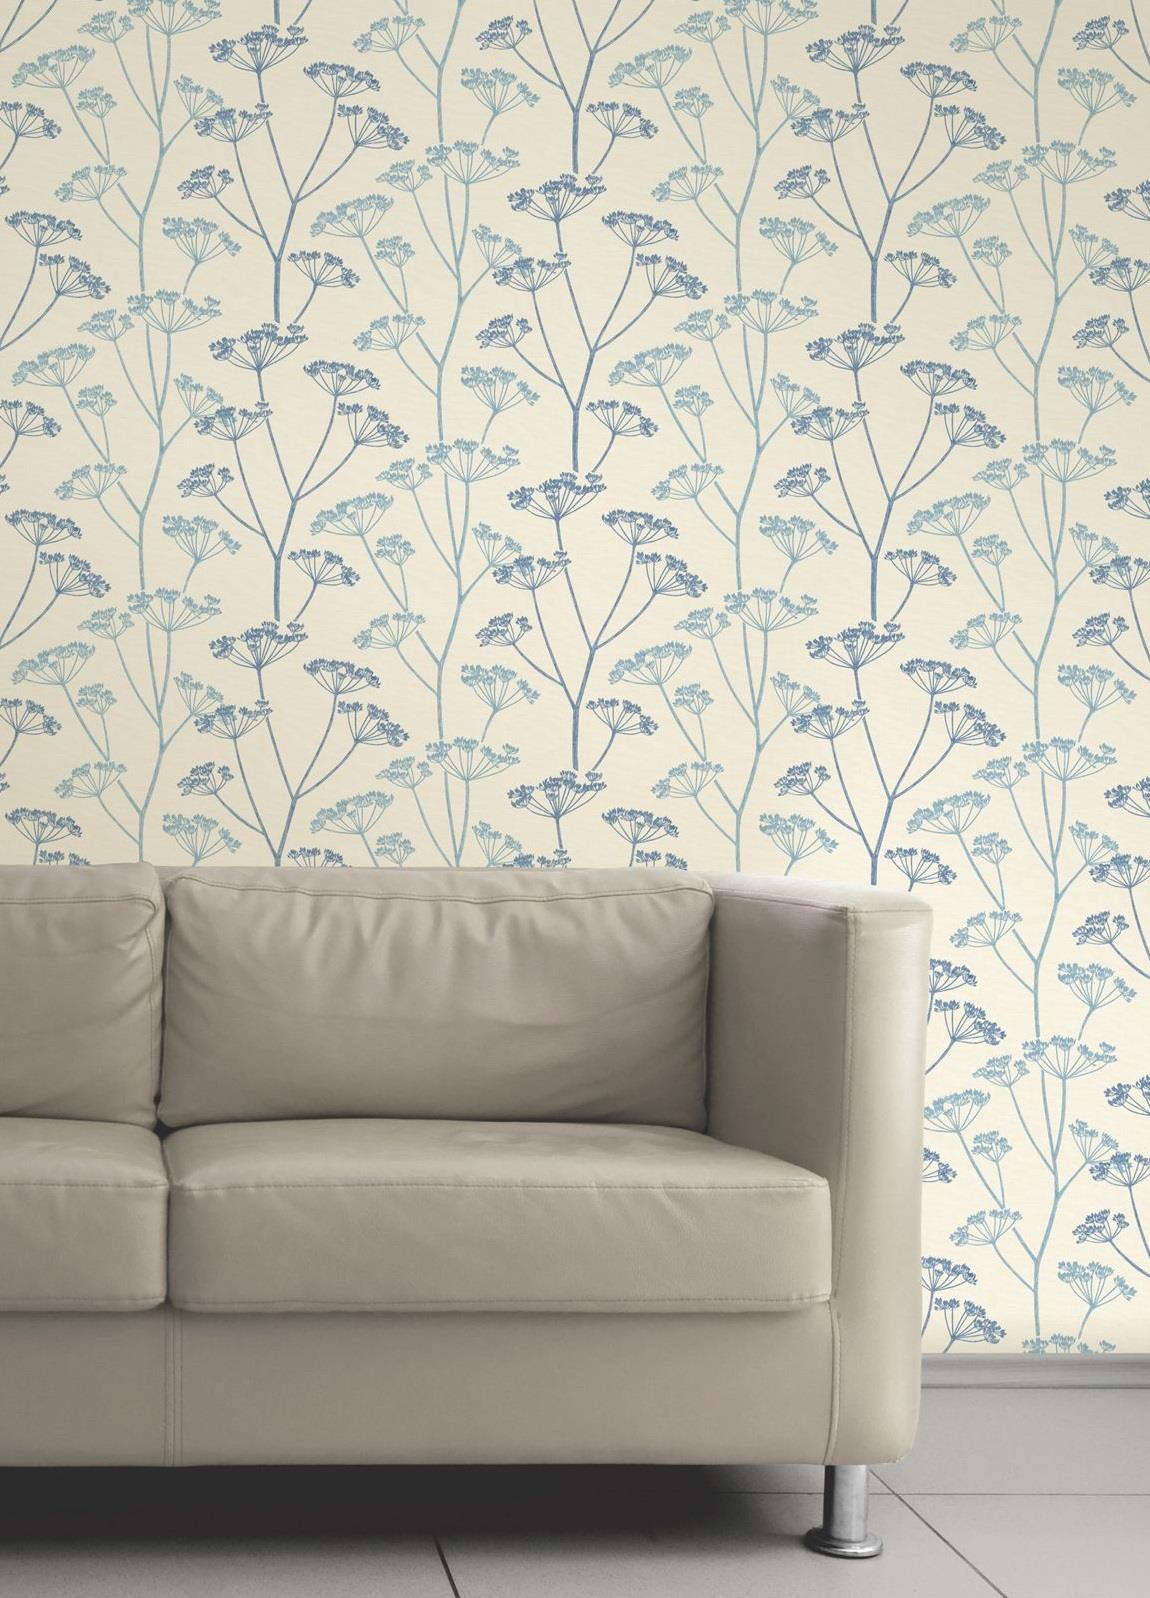 Off White Green and Grey Floral Flower Theme Wallpaper Fine Decor FD20680